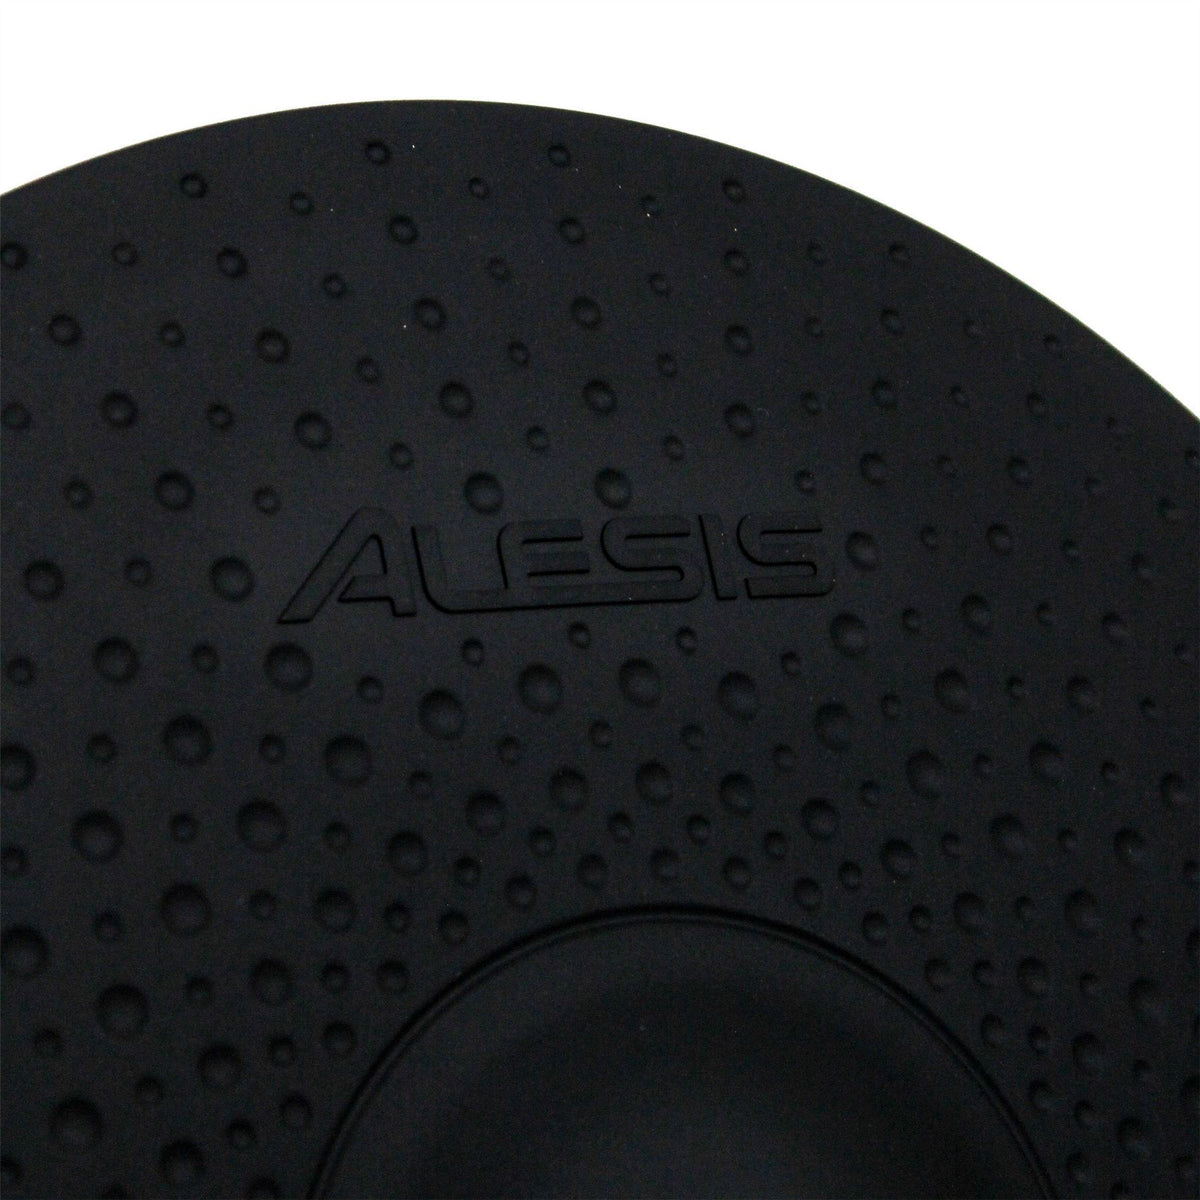 "Alesis 16"" Triple-Zone Cymbal Pad for Strike and Strike Pro Electronic Drum Kit"